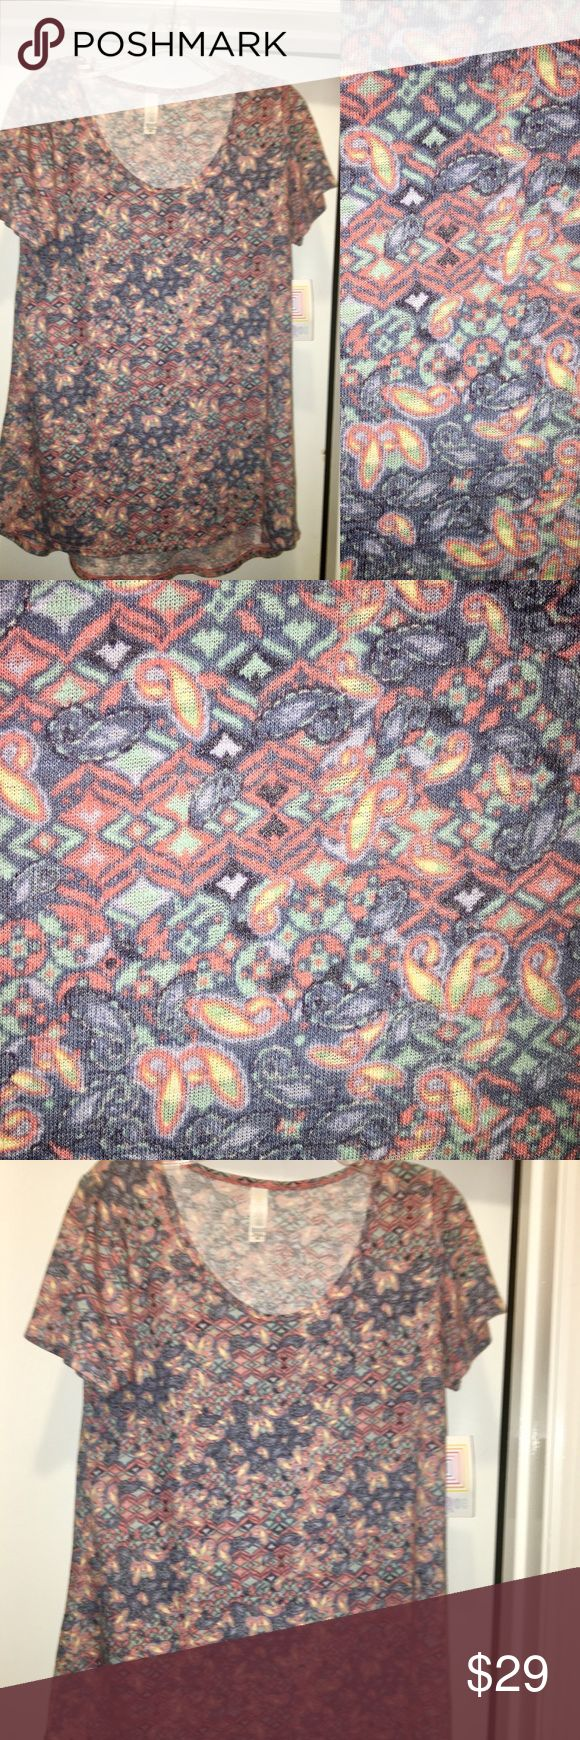 LulaRoe XS Classic T NWT This T has light weight fabric with a linen/textured feel. It is not pilled, that's the textile weave. The detailed floral/geometric mixed pattern is in beautiful shades of rose, denim blue, mint, pale yellow, and pale purple.  Hypoallergenic/friendly home 🚭  LulaRoe Classic T is a wardrobe staple. Can be tucked in a skirt/slacks or casual with jeans/leggings/shorts. Soft breathable fabric, roomy short sleeve, high scoop neckline, slight tailored torso, loose at the…